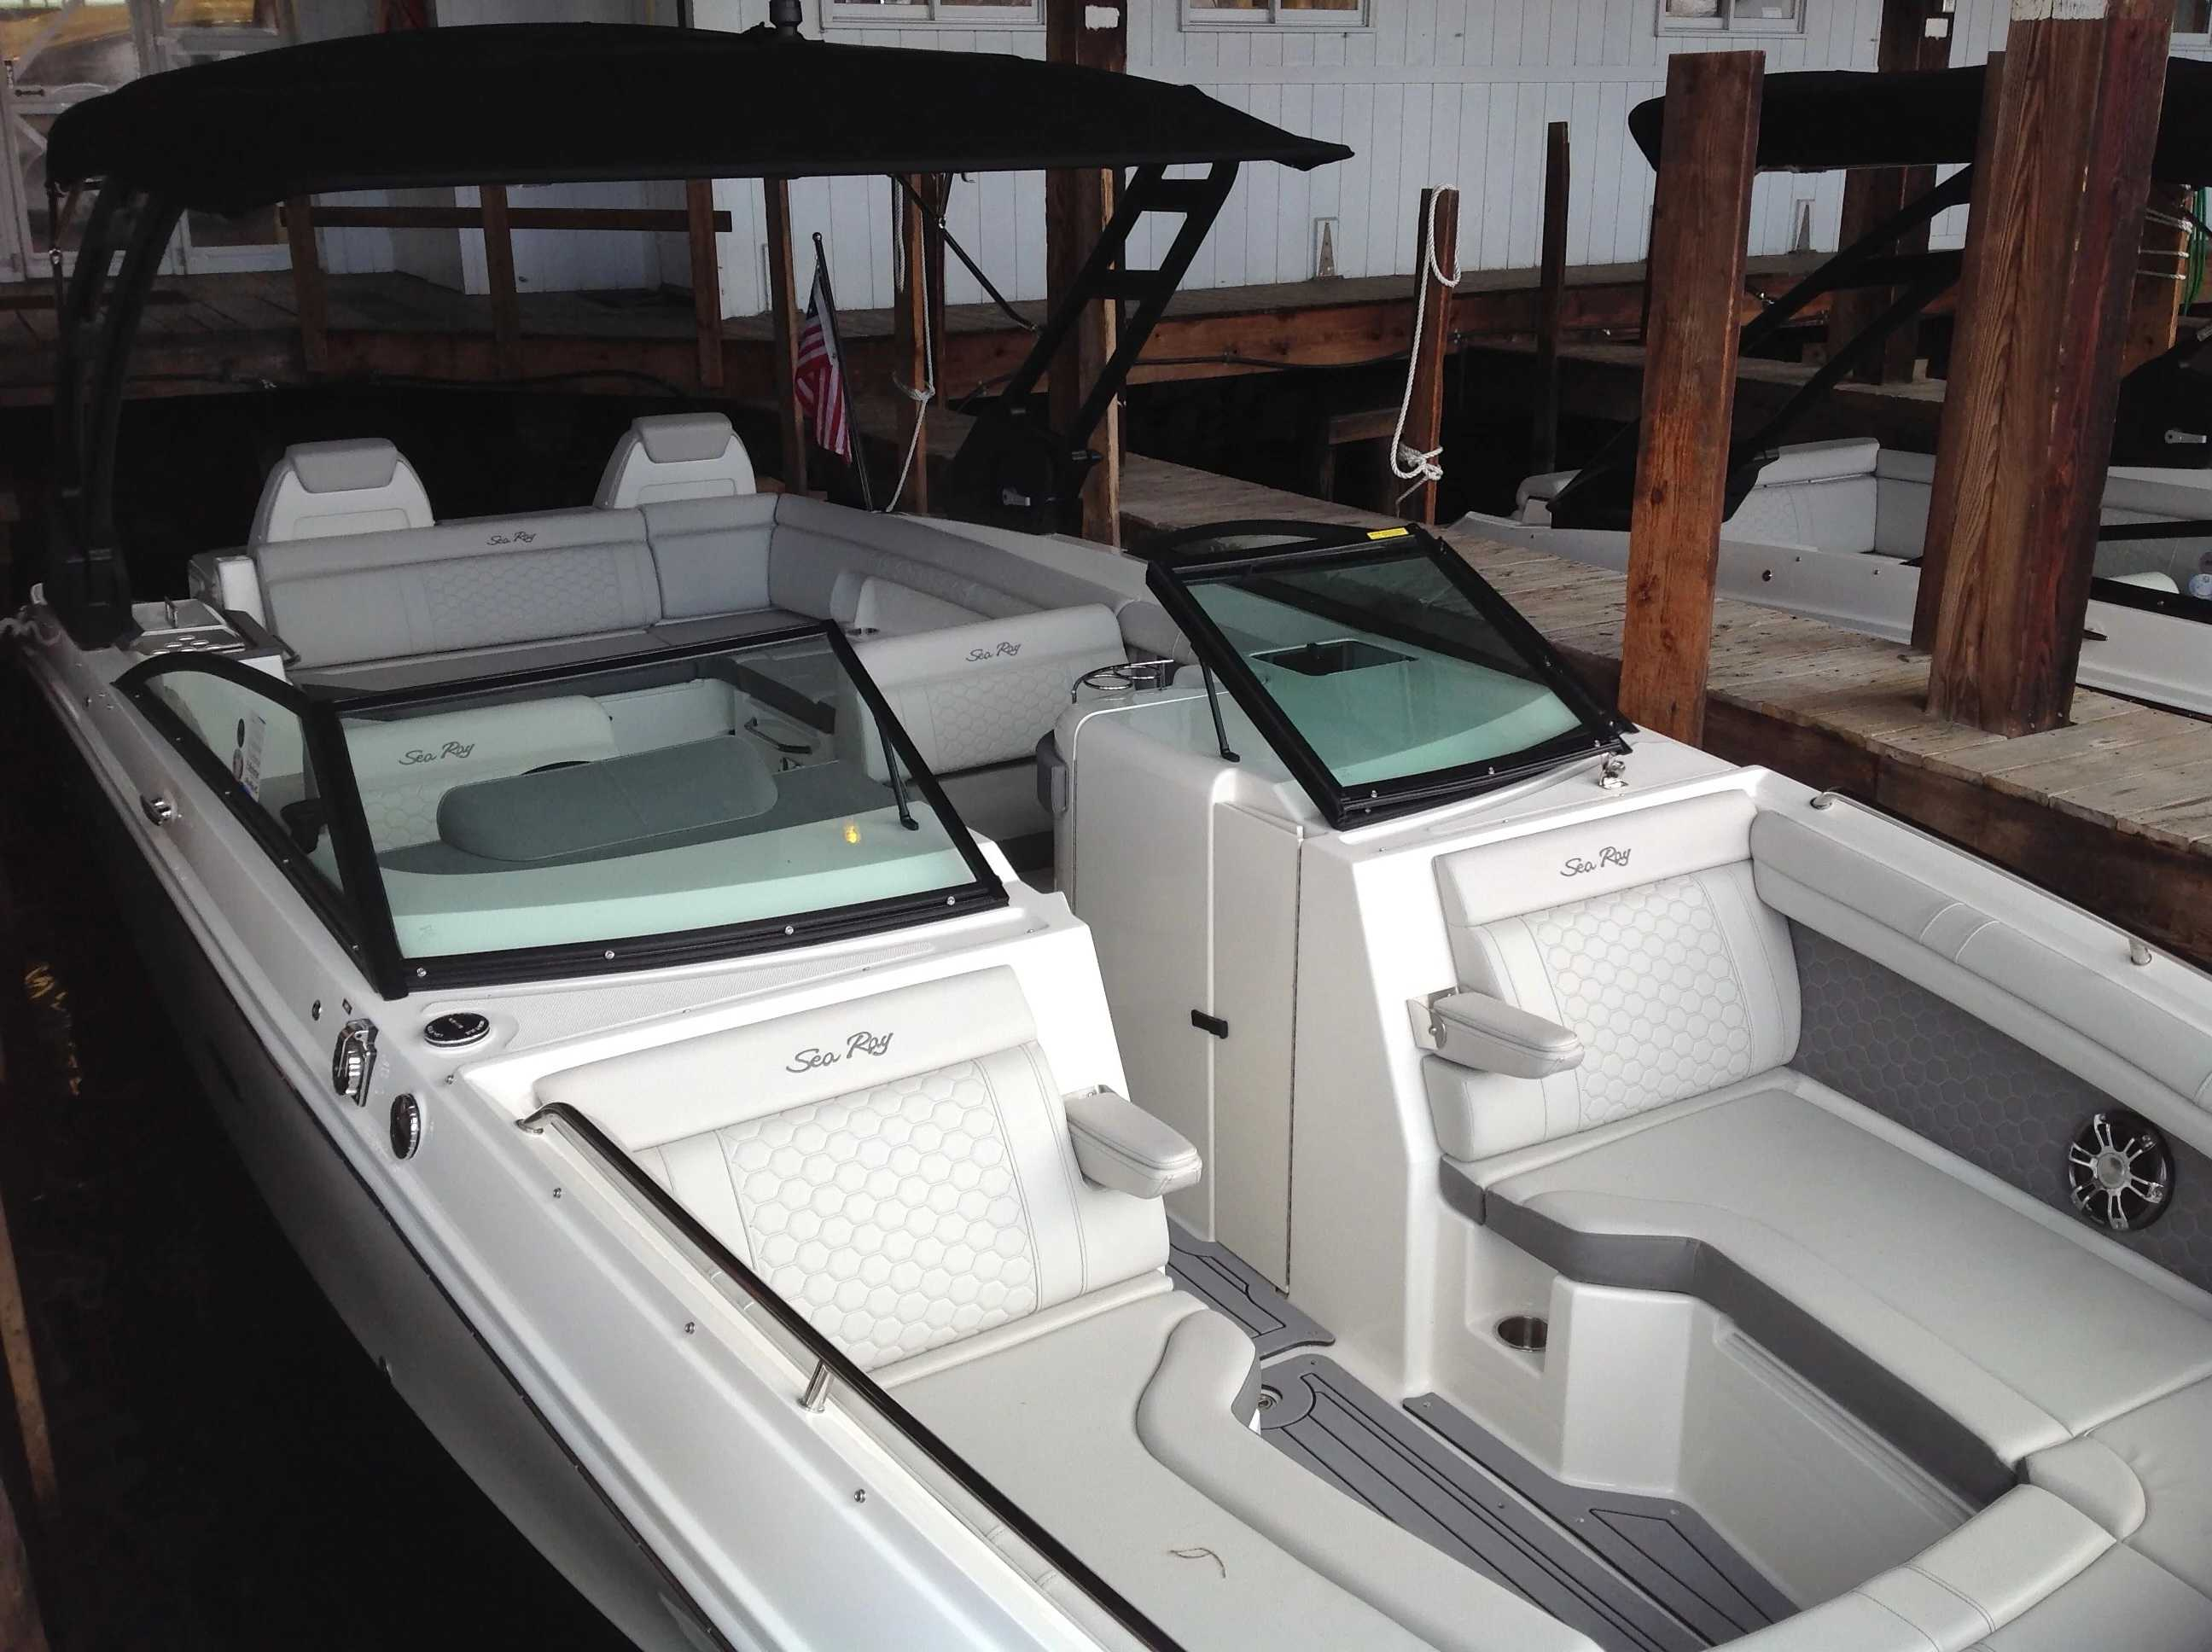 2021 Sea Ray boat for sale, model of the boat is 270 sdx & Image # 4 of 17